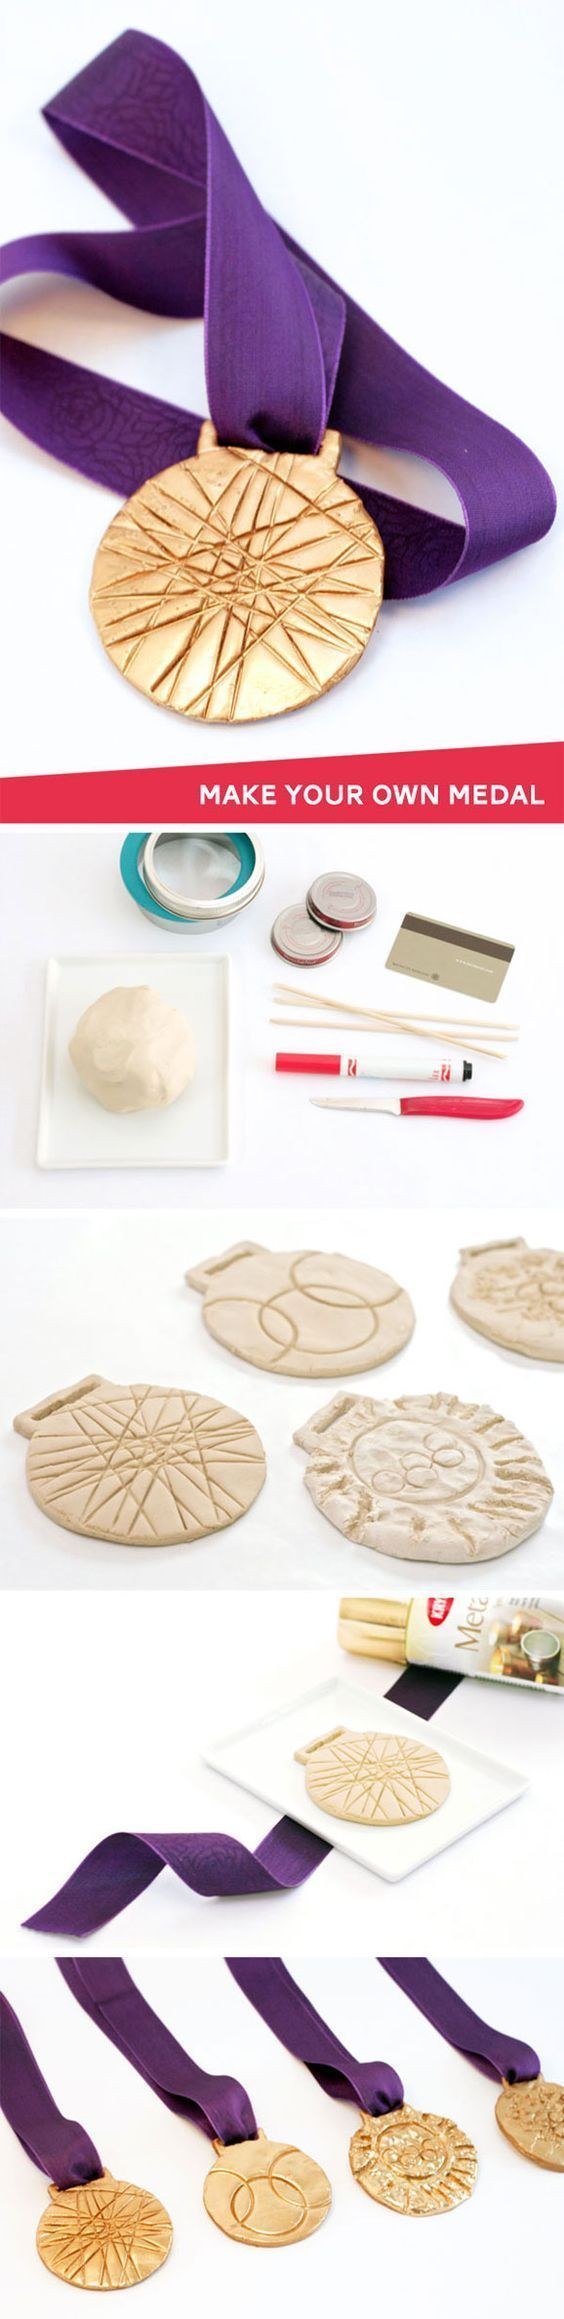 How to Make an official looking Olympic Gold Medal 2016 Summer Games #olympics #goldmedal